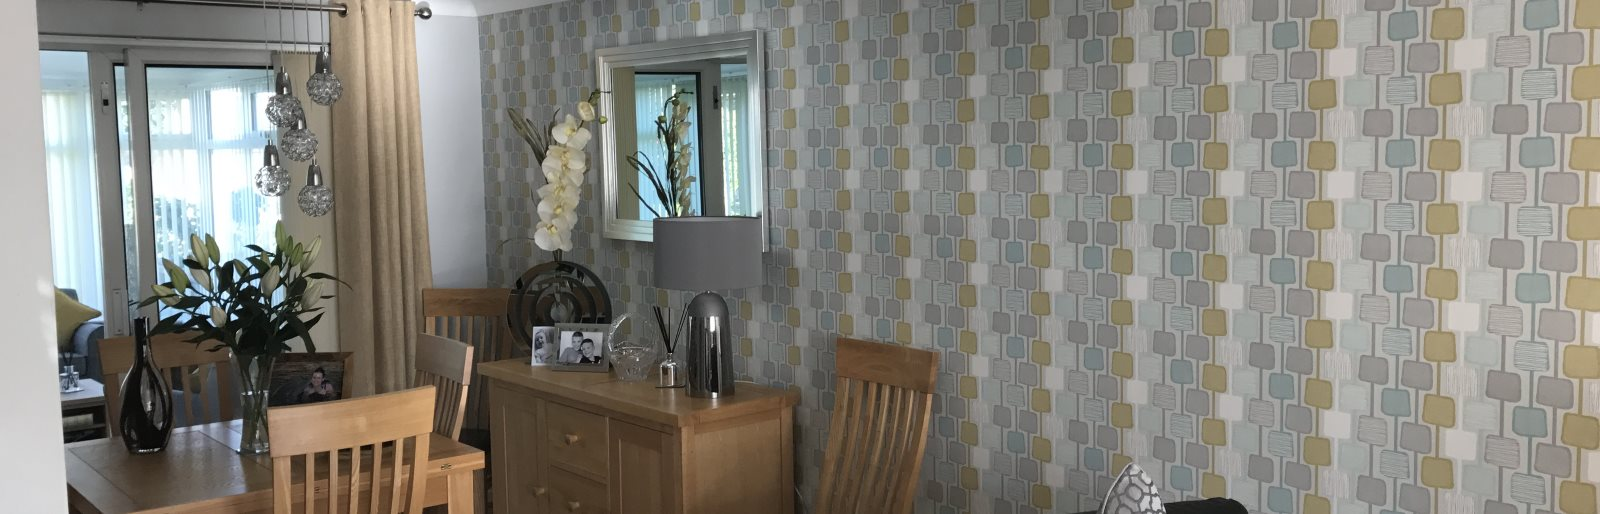 wallpaperer-in-carlisle